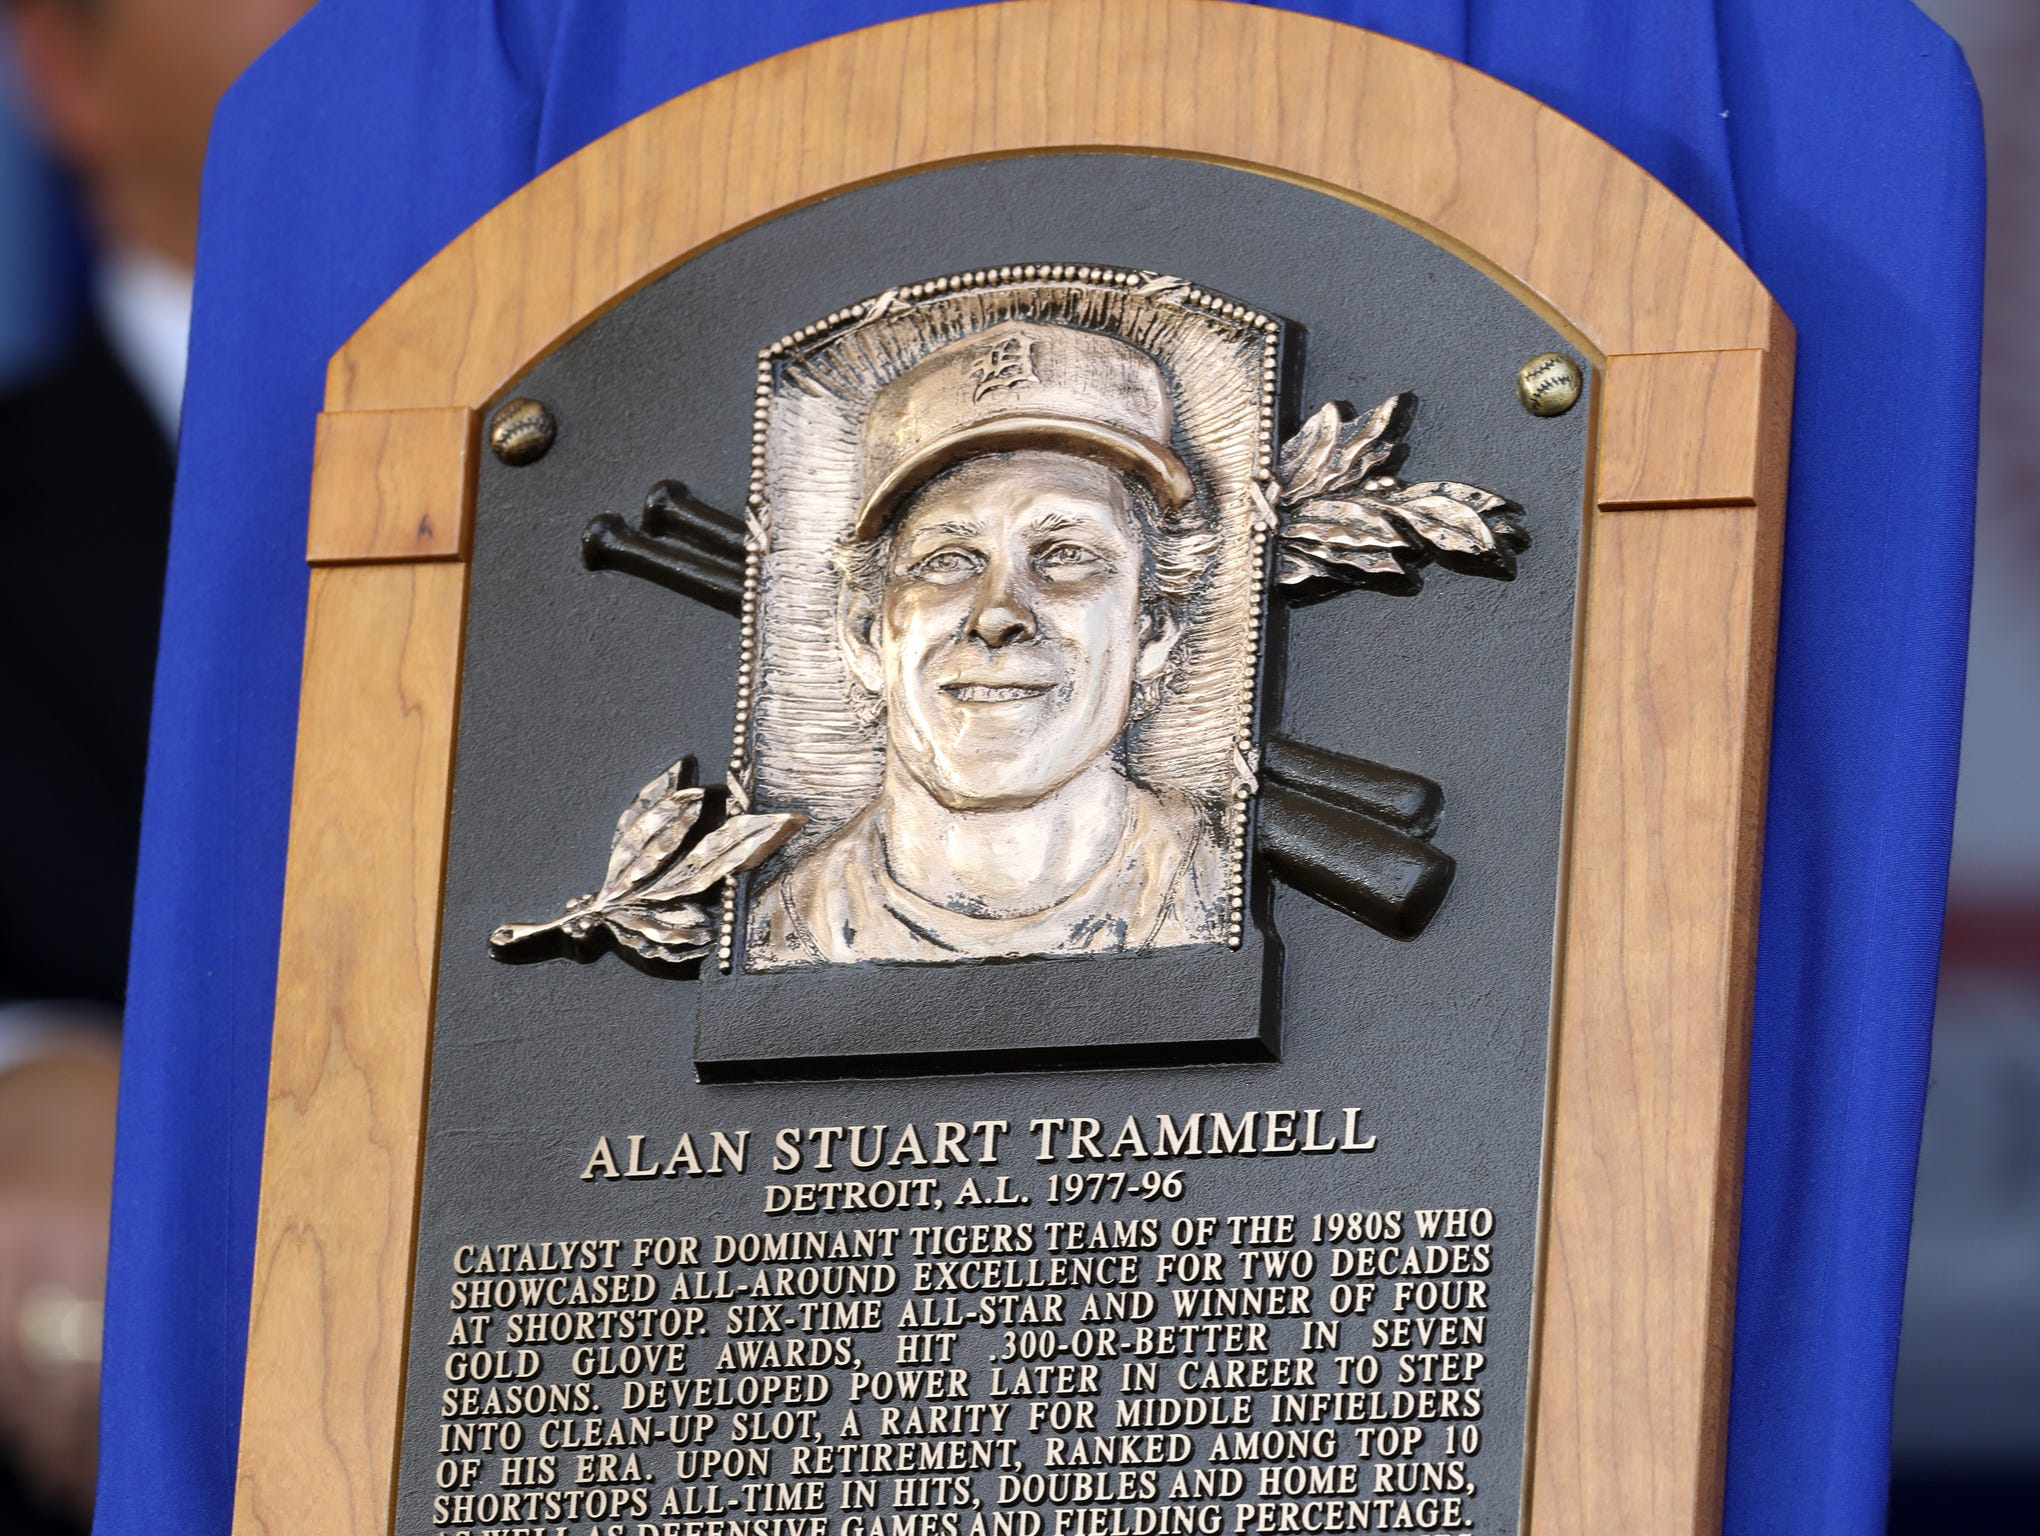 The Baseball Hall of Fame plaque of Tigers great Alan Trammell at the Clark Sports Center during the National Baseball Hall of Fame induction ceremony in Cooperstown, N.Y. on Sunday, July 29, 2018.